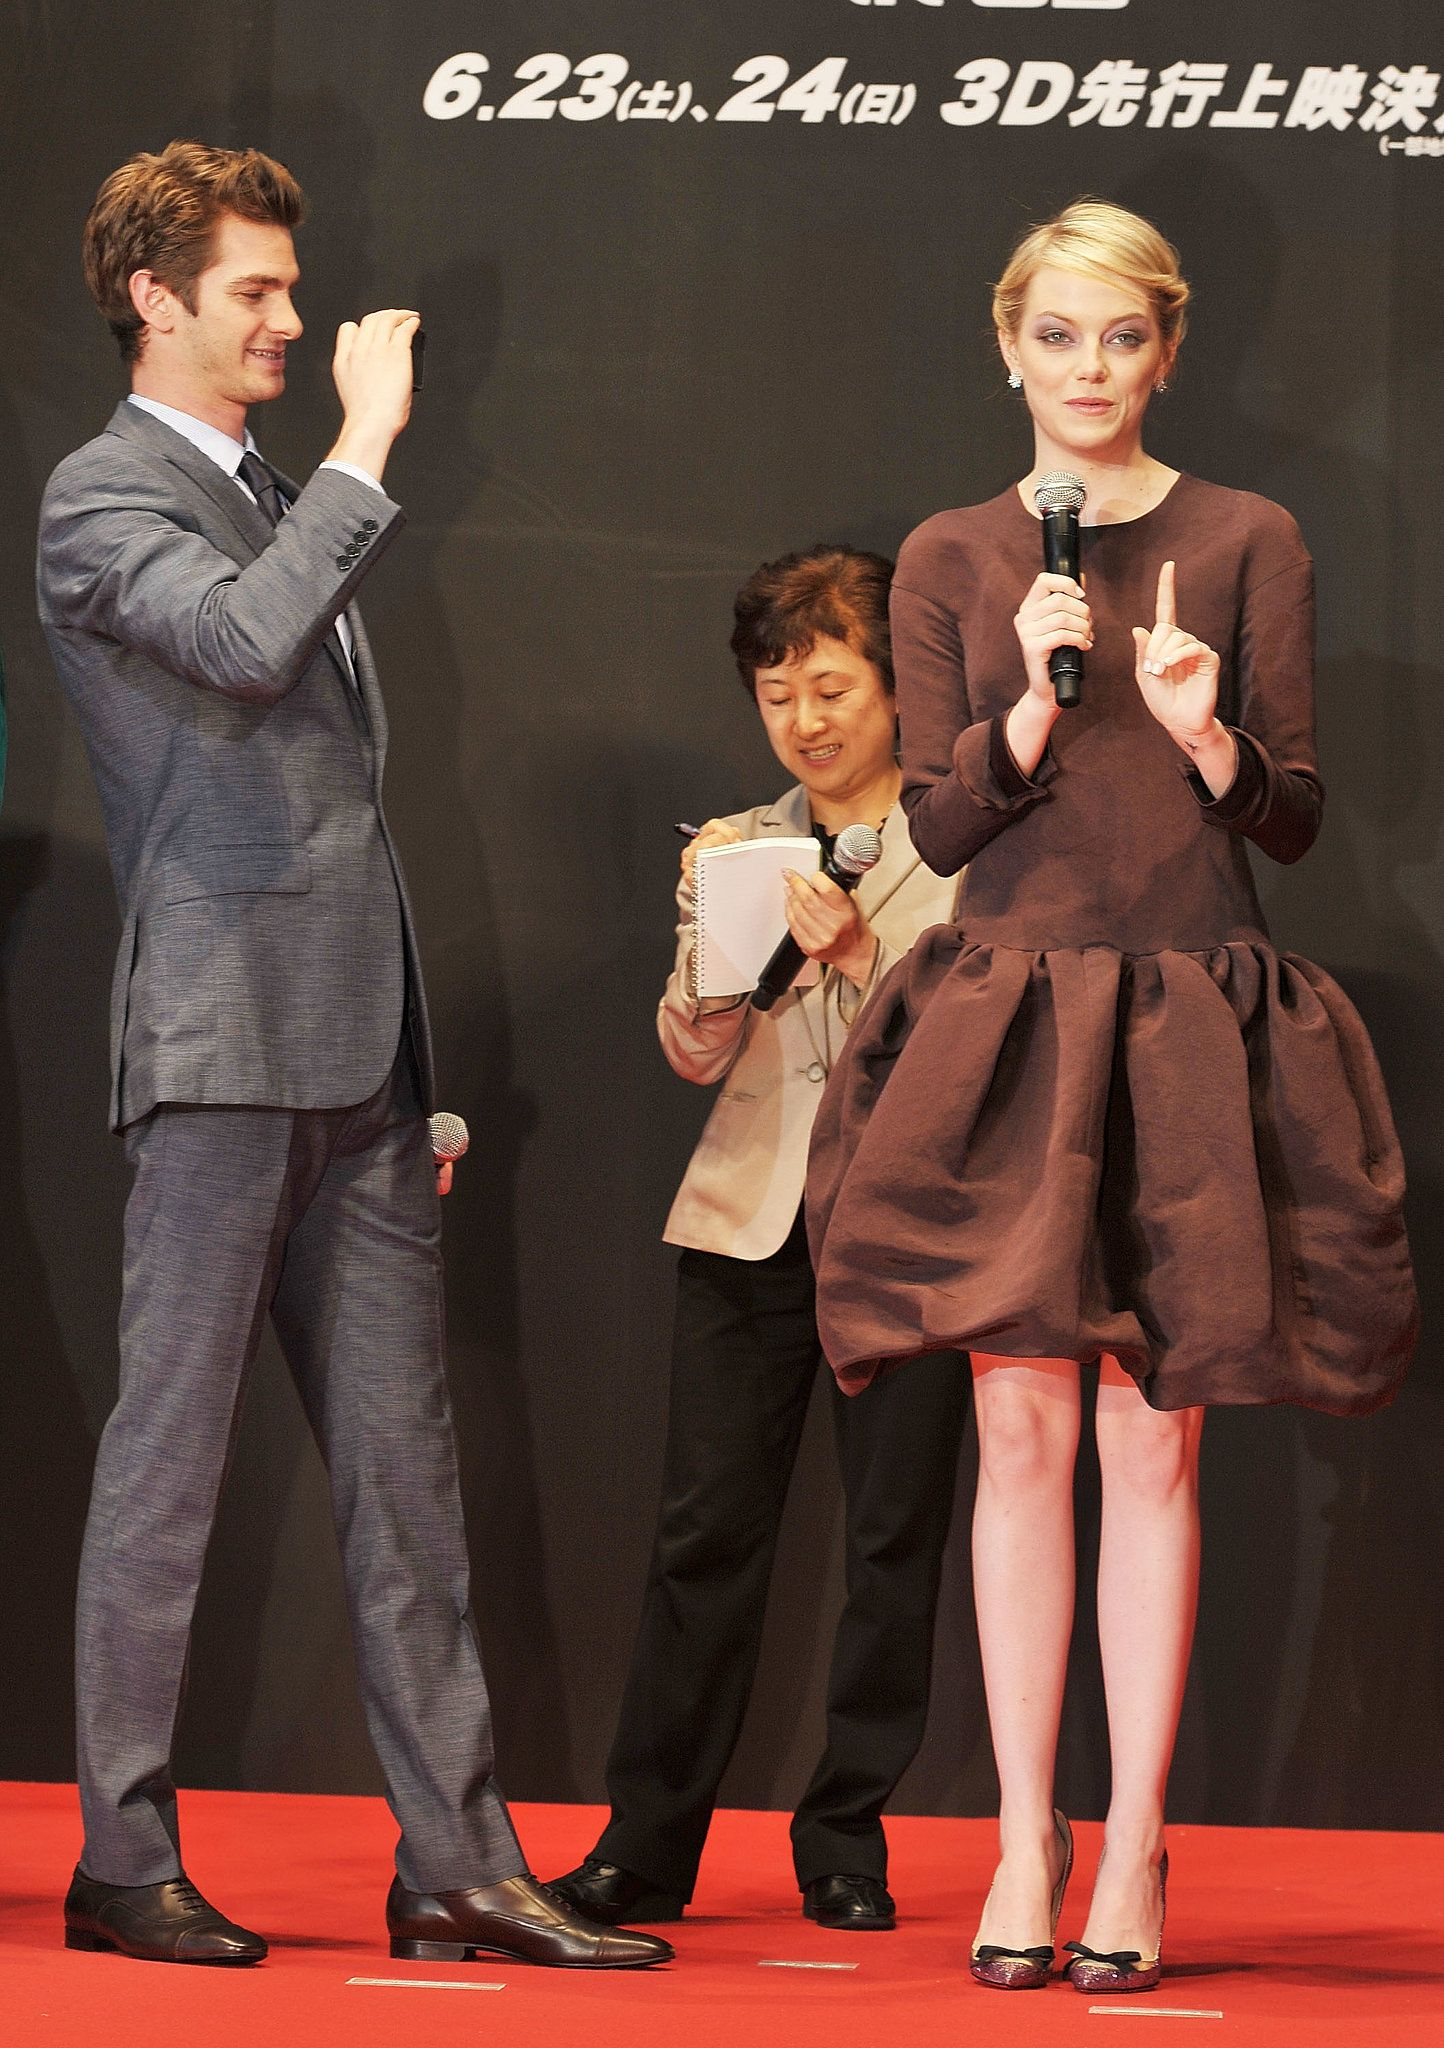 Andrew Snapped A Cute Photo Of Emma During The Tokyo Premiere Of The The Way They Were Emma Stone And Andrew Garfield S Most Adorable Moments Andrew Garfield Emma Stone Cute Photos